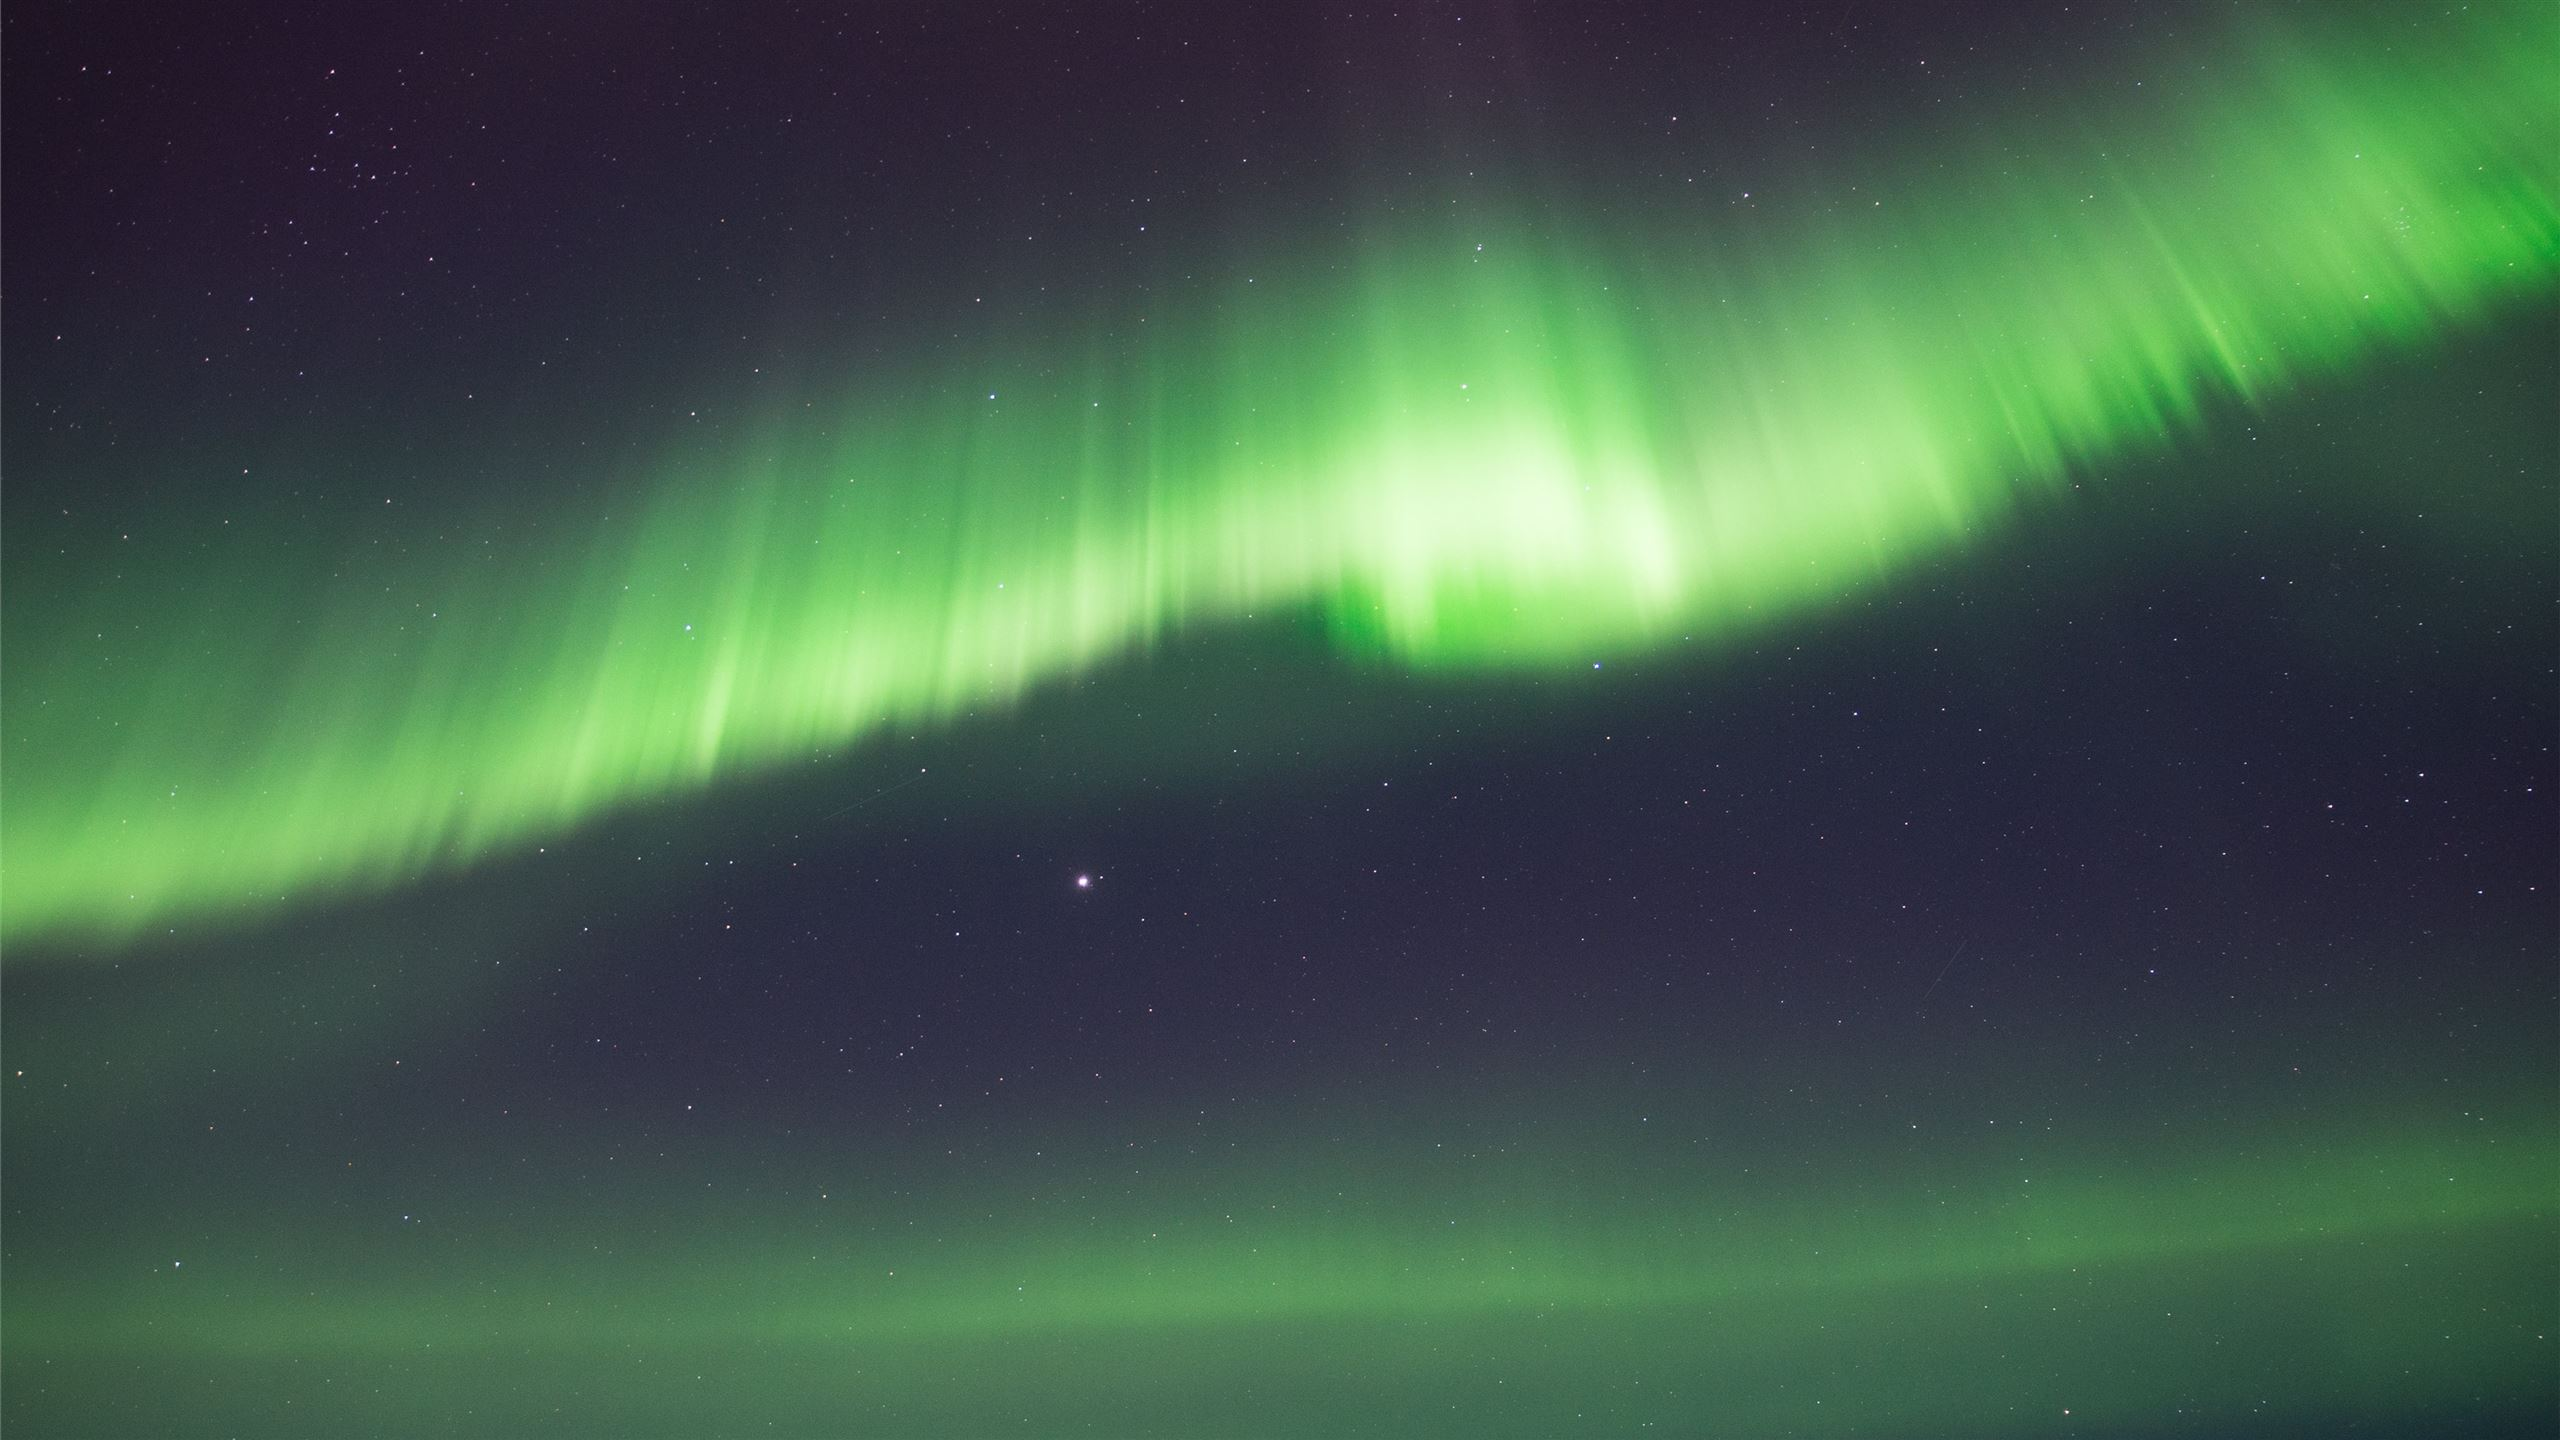 Green Northern Lights Wallpaper Mac Wallpaper Download